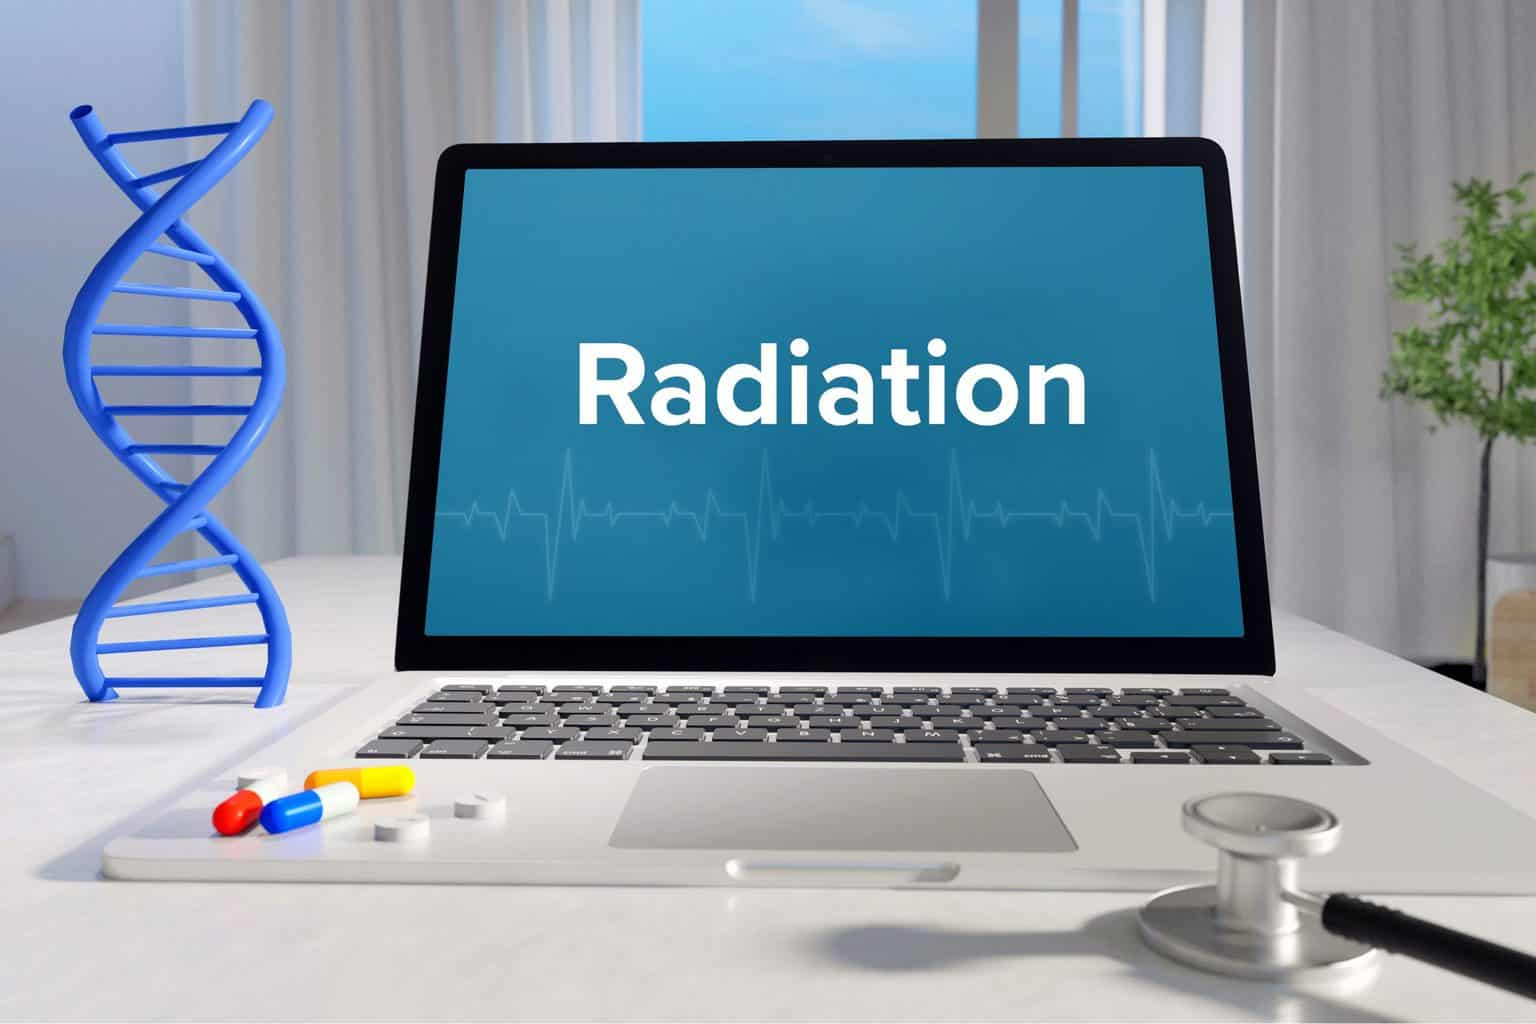 Do computers emit radiation?